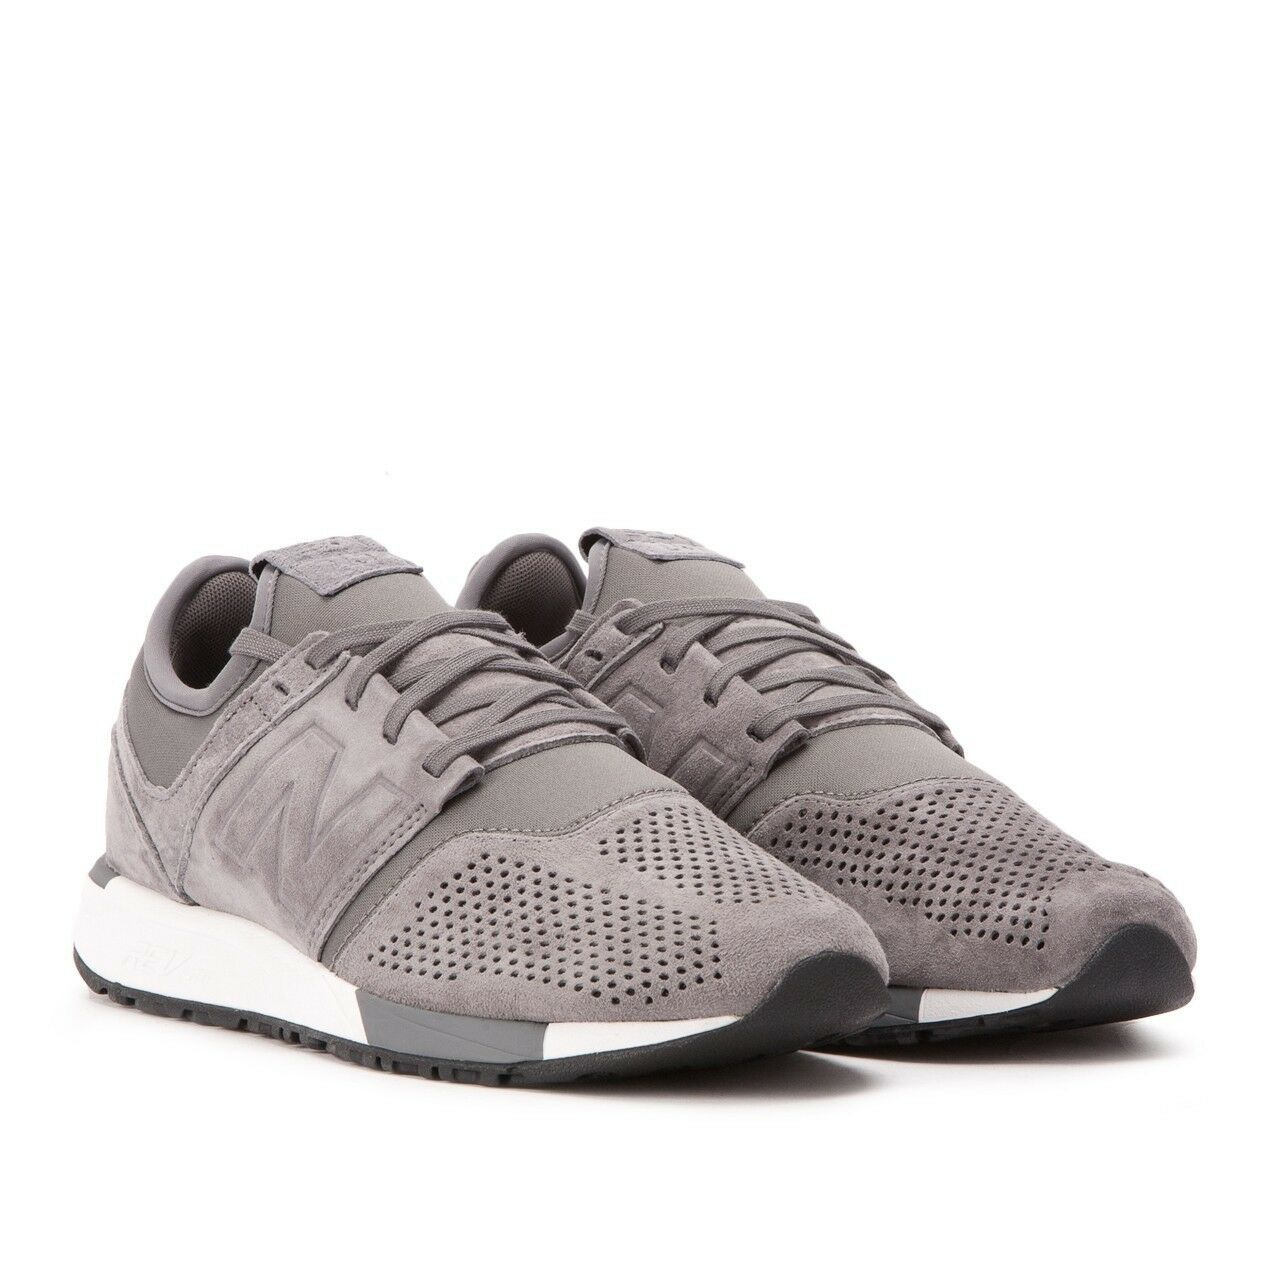 New Balance 247 Grey Suede Revlite New Men Shoes Gym Training Running MRL247LY